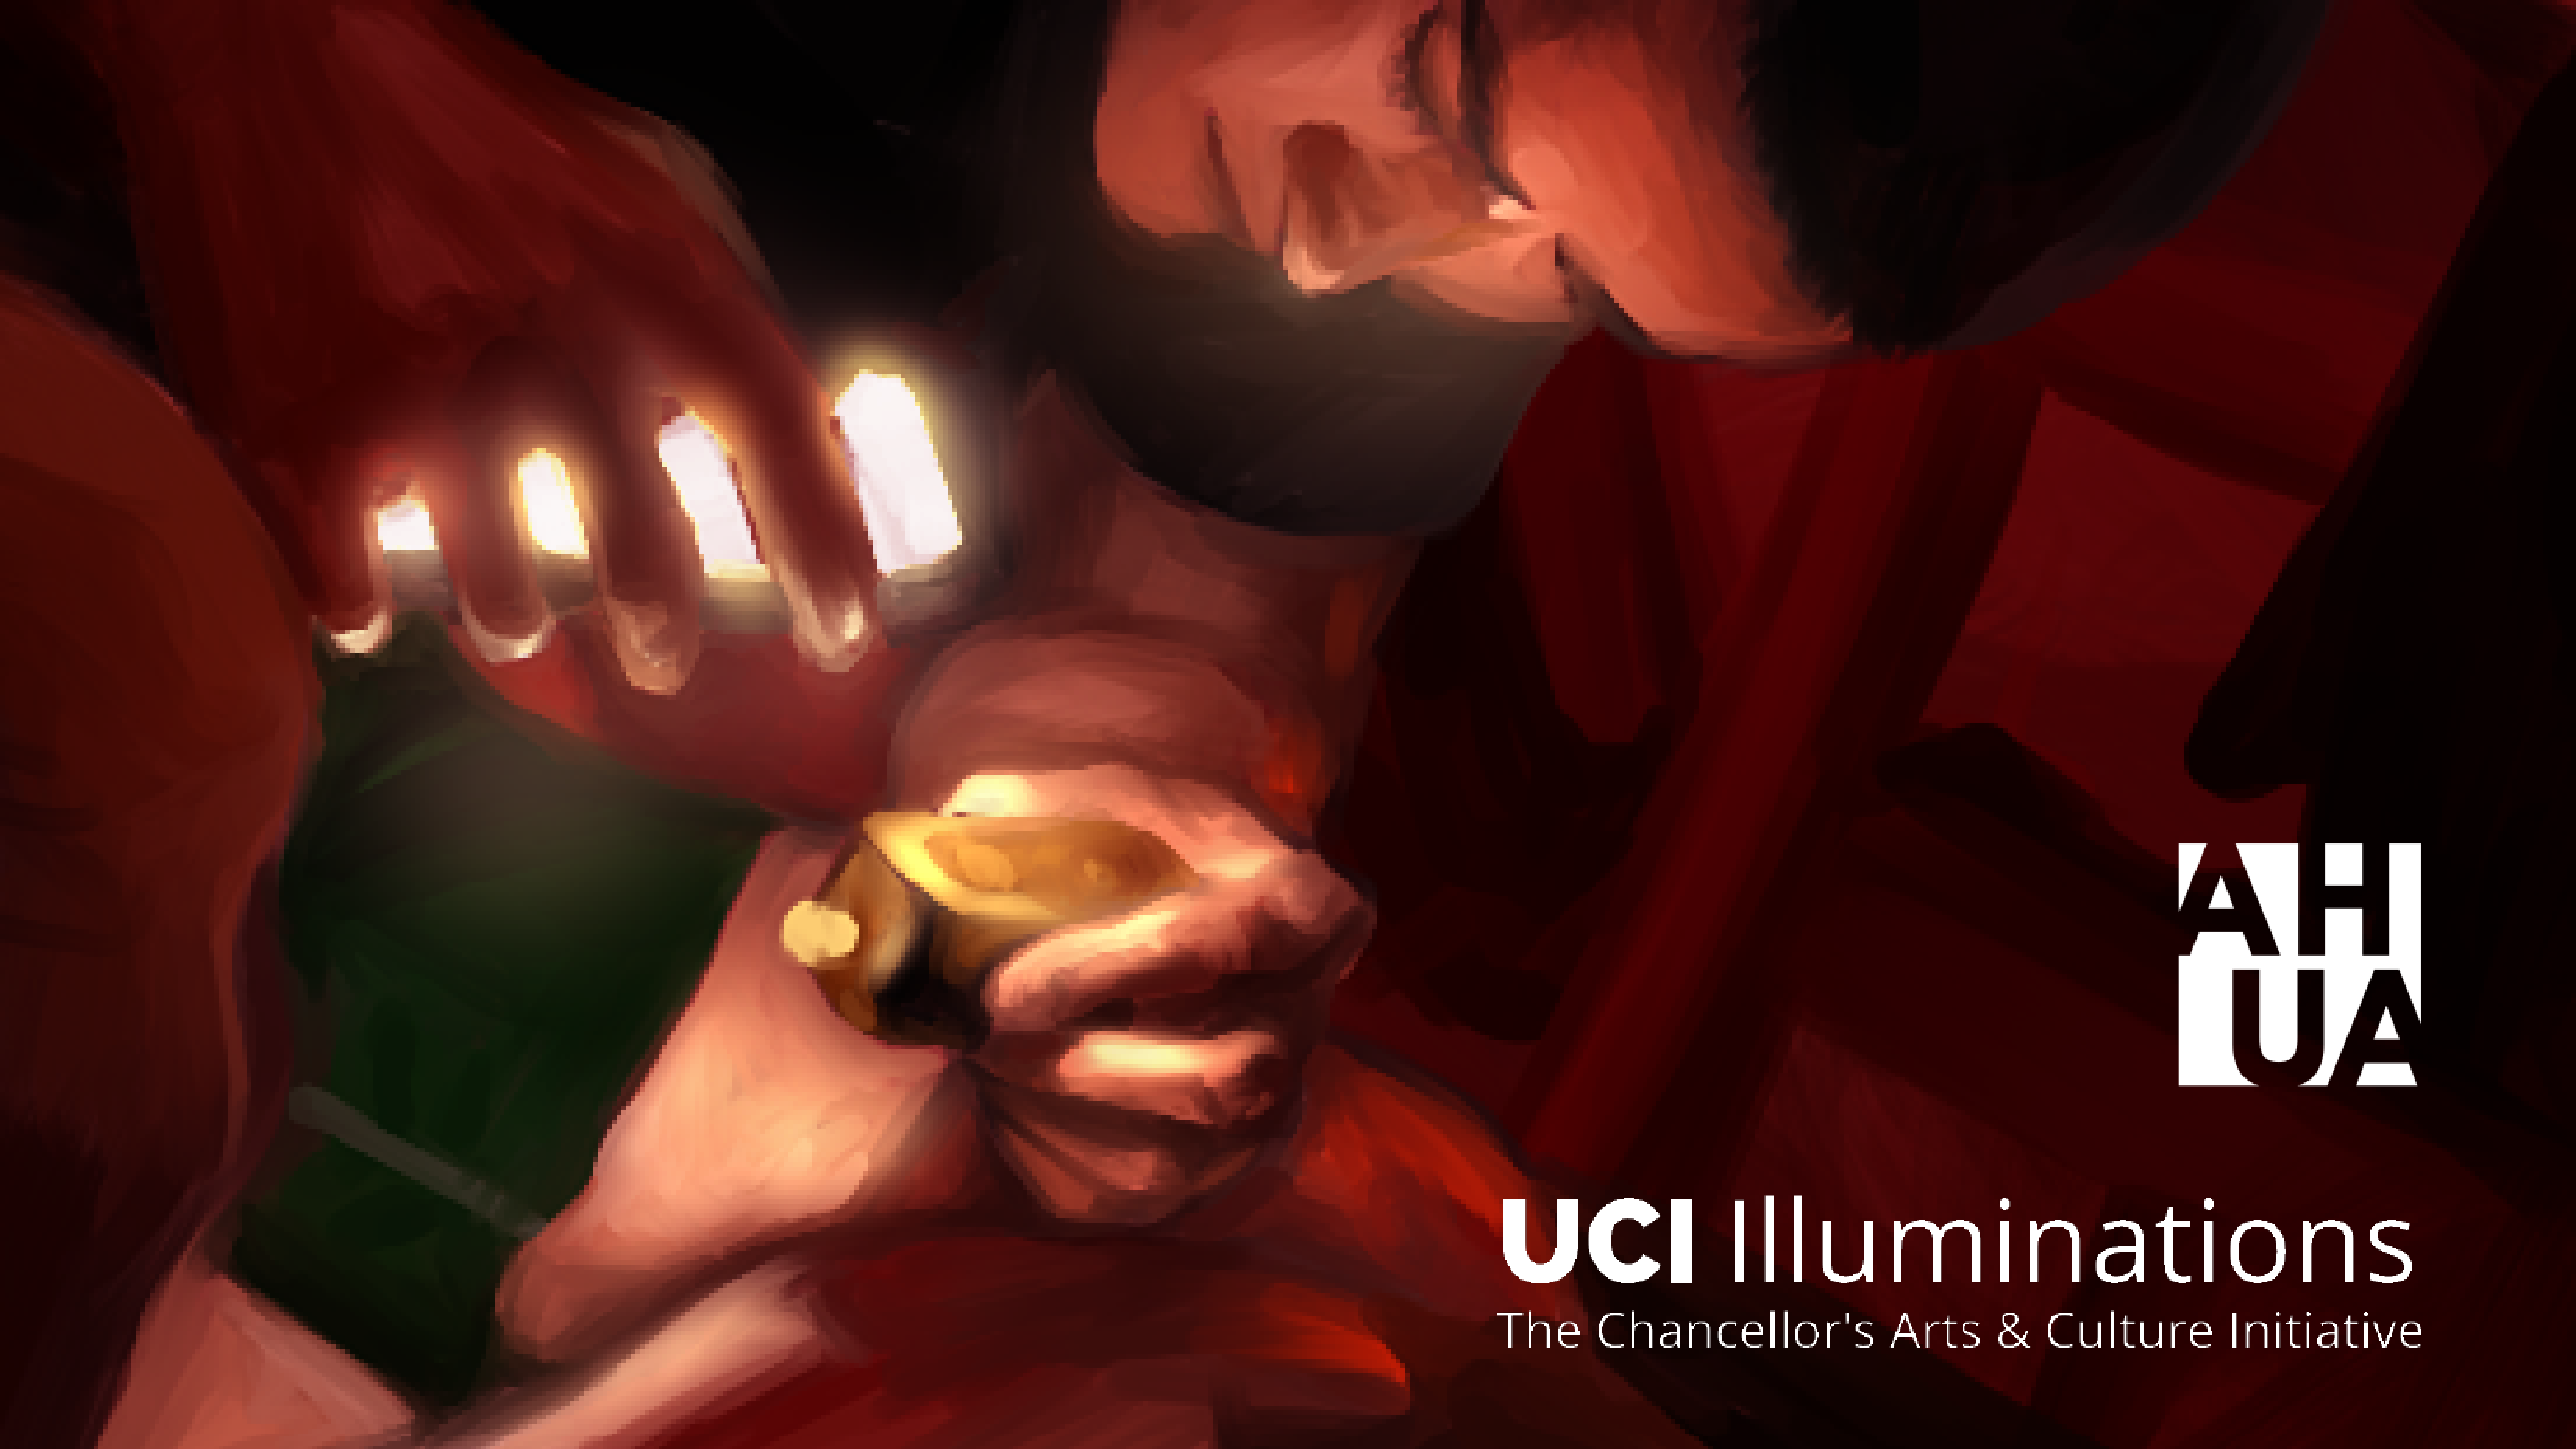 Querencia — Part of the cover for the Querencia Exhibition Booklet is depicted. It includes a red-themed illustration of a male young adult holding up something to a light while sitting down. In the bottom right corner, there are two logos for AHUA (UCI Art History Undergraduate Association) and UCI Illuminations: The Chancellor's Arts & Culture Initiative.